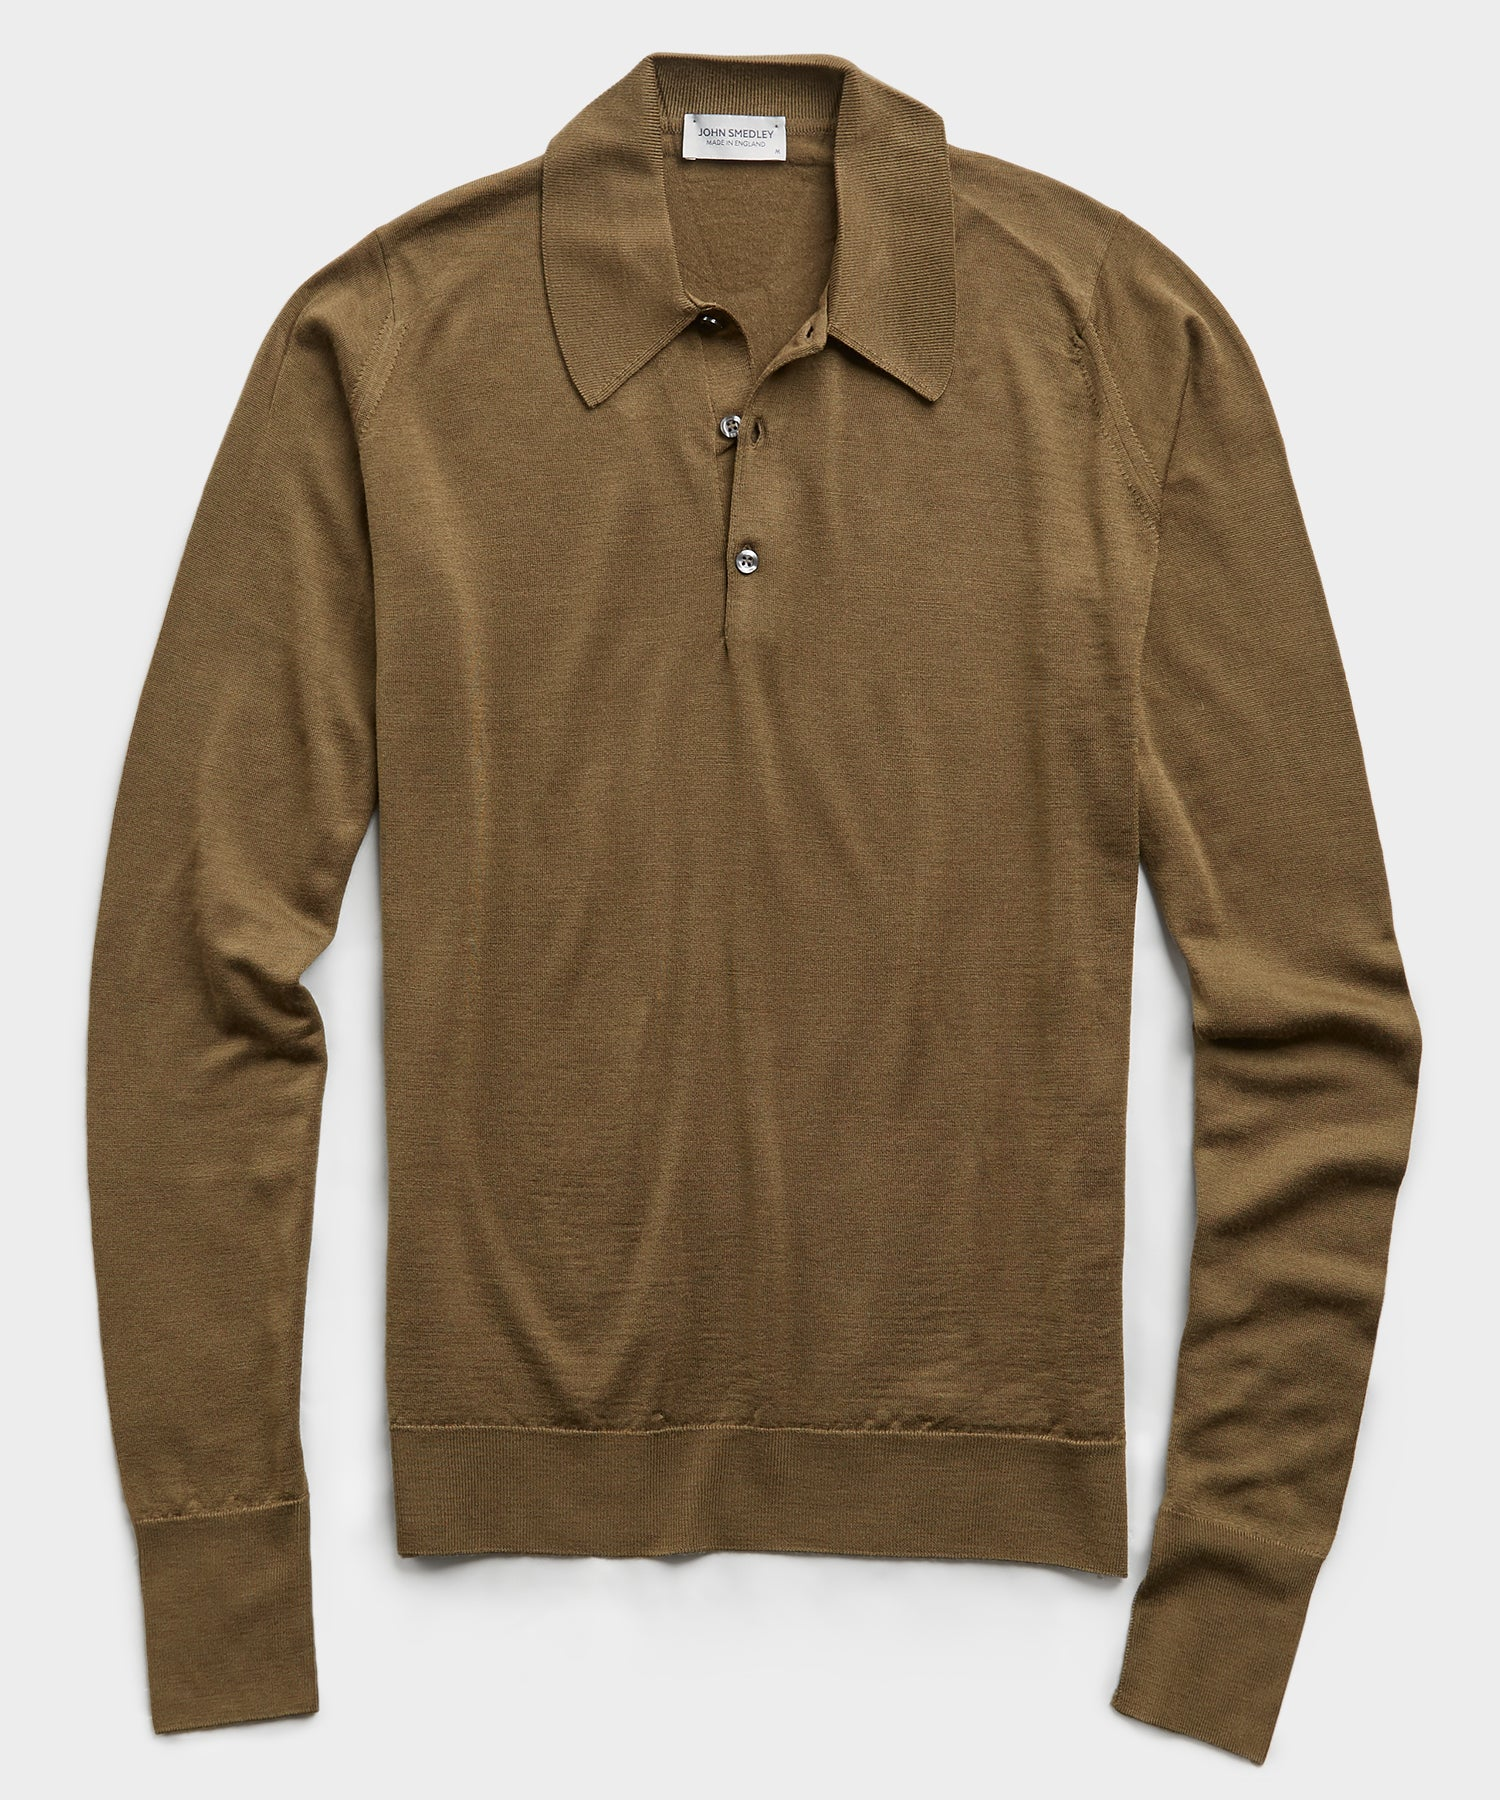 John Smedley Easy Fit Long Sleeve Polo Sweater in Khaki